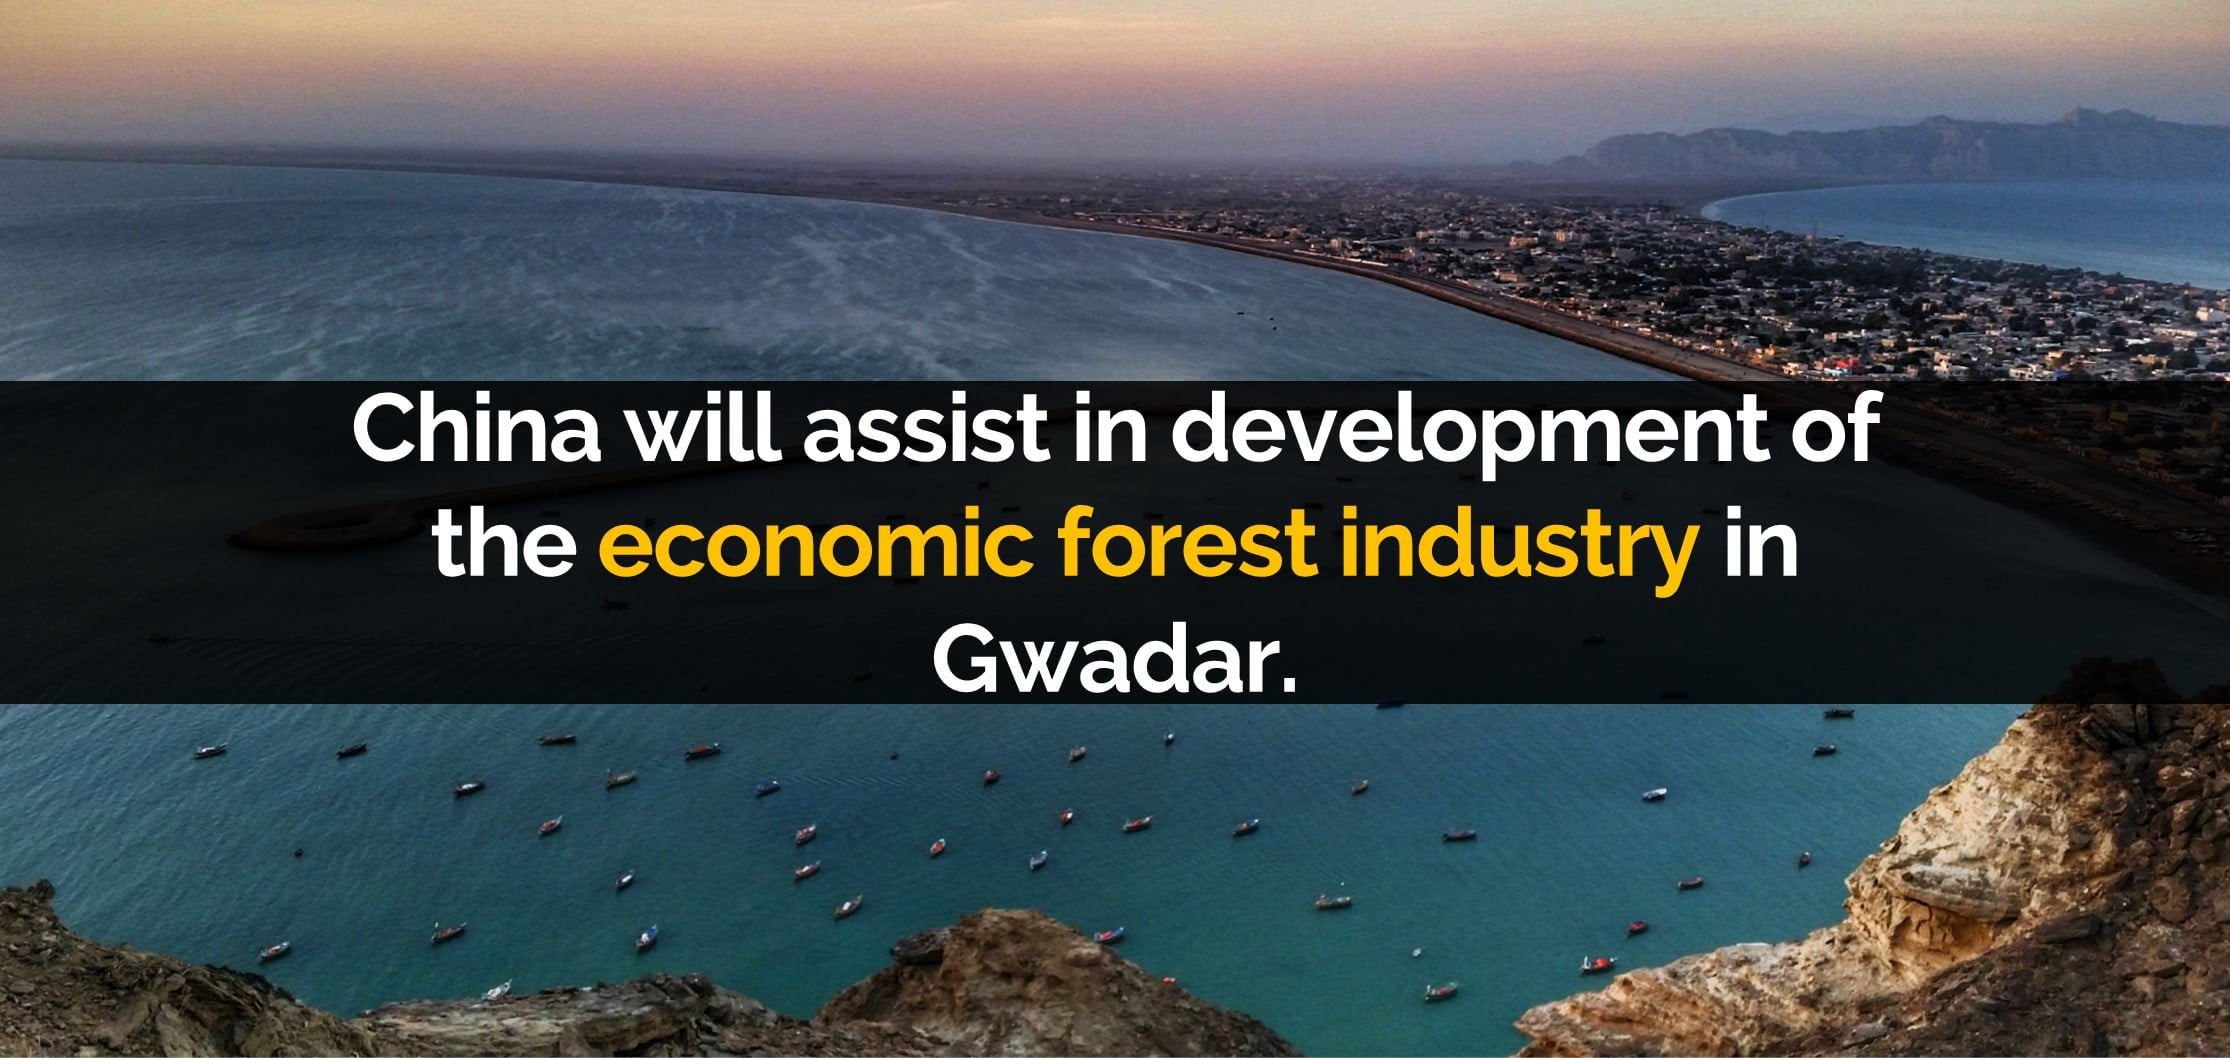 China will assist in development of the economic forest industry in Gwadar